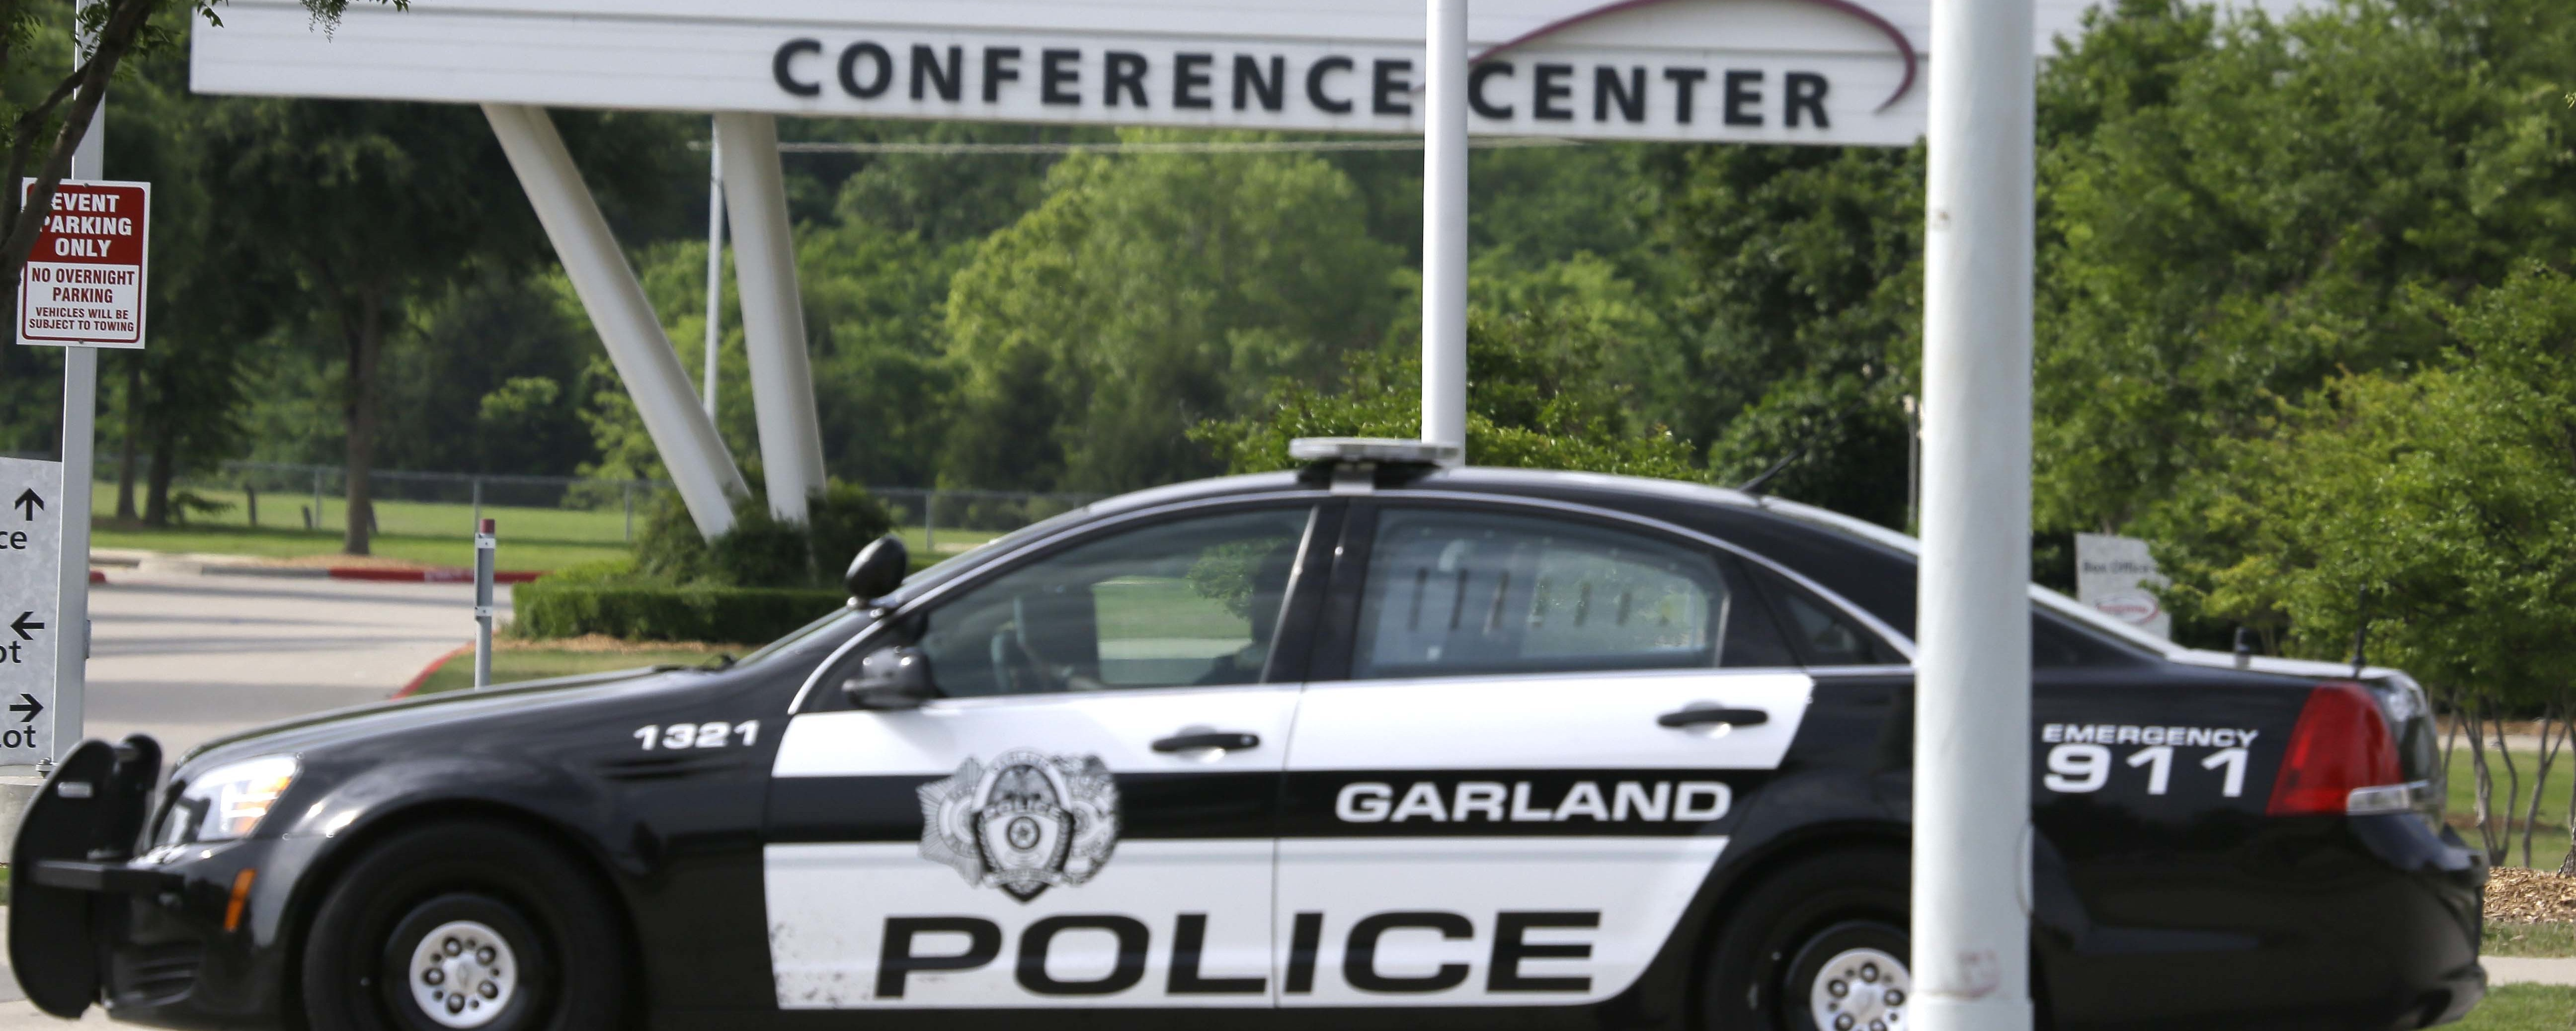 Amid Death Threats and Attacks on Muslims, Garland Remains Divided in Wake of 'Draw Muhammad' Shootings